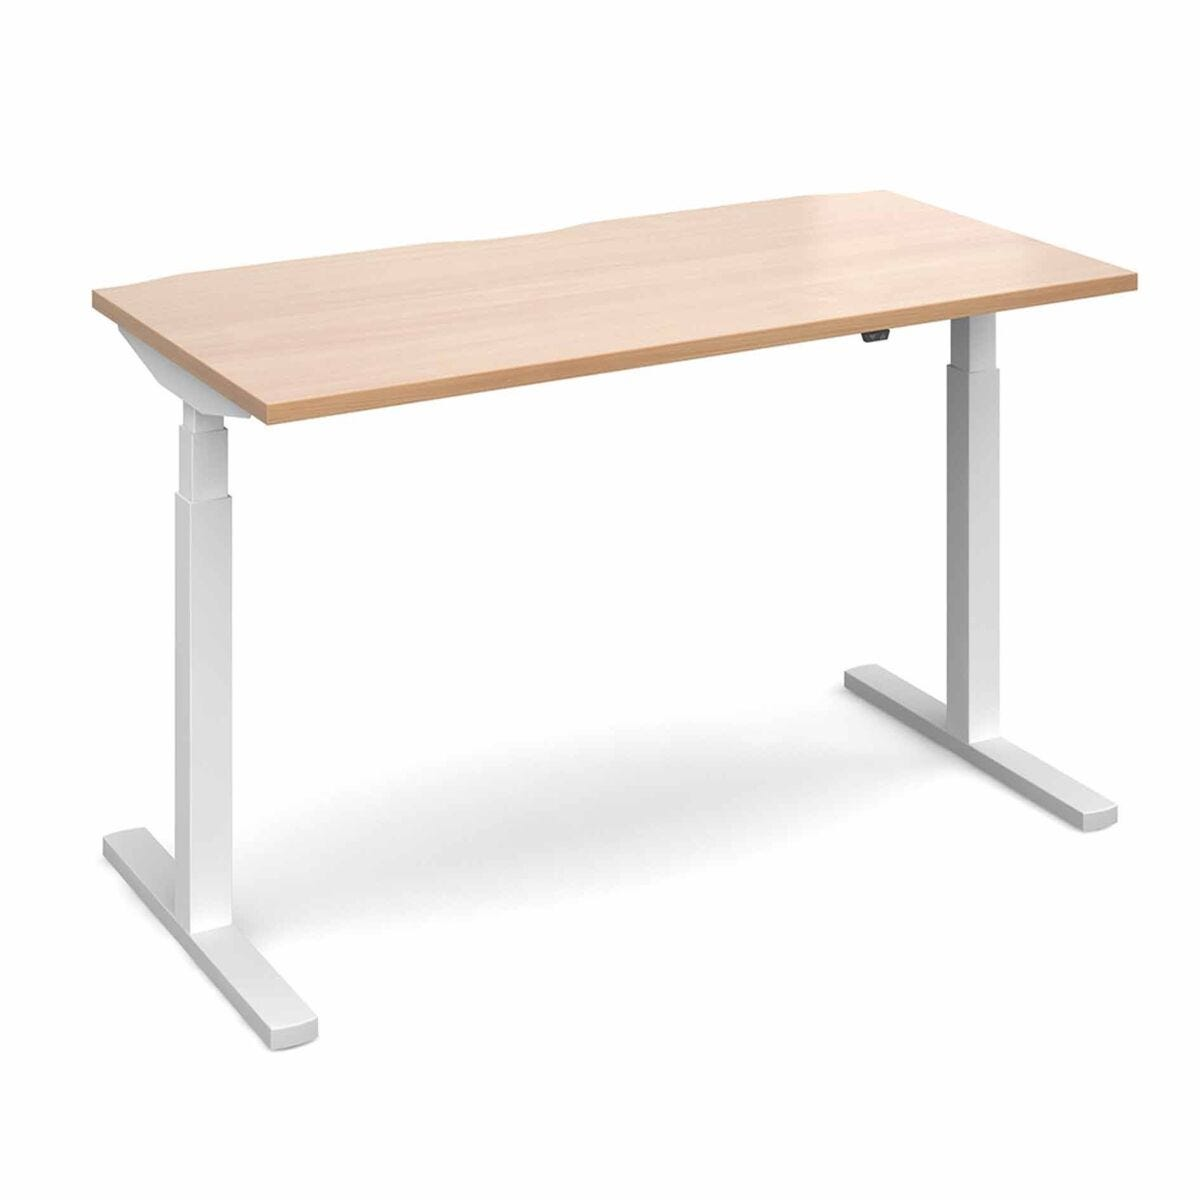 Elev8 Touch Straight Sit-Stand Desk 1600mm x 800mm White Frame